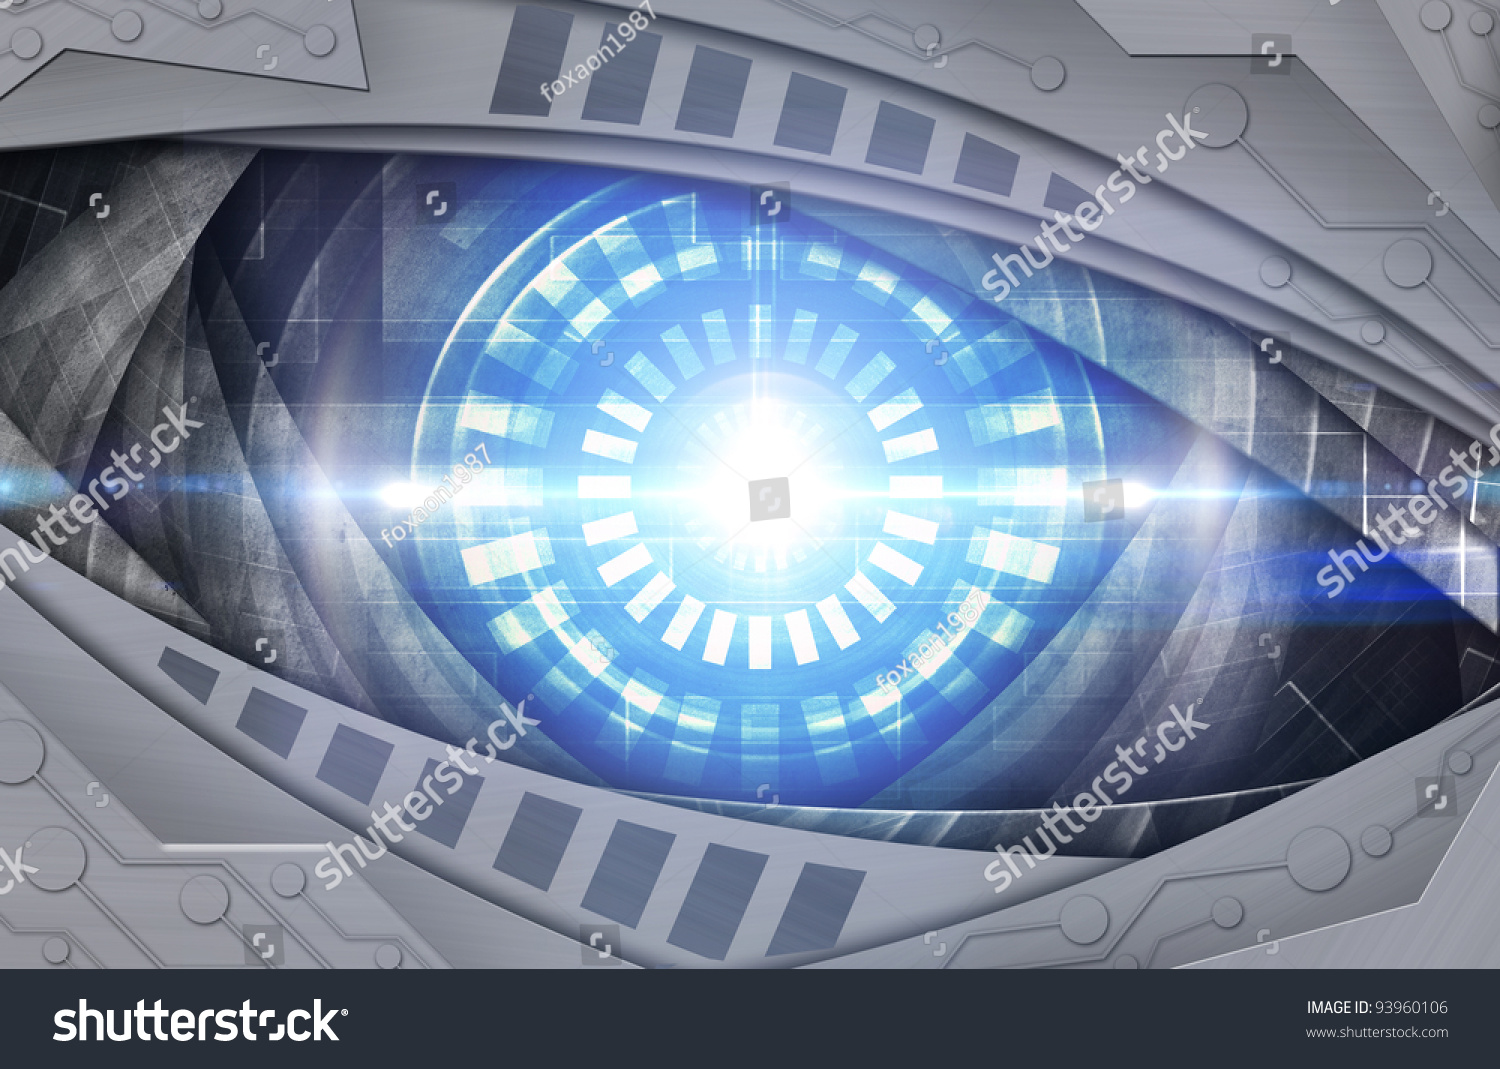 abstract robot eye background stock illustration 93960106